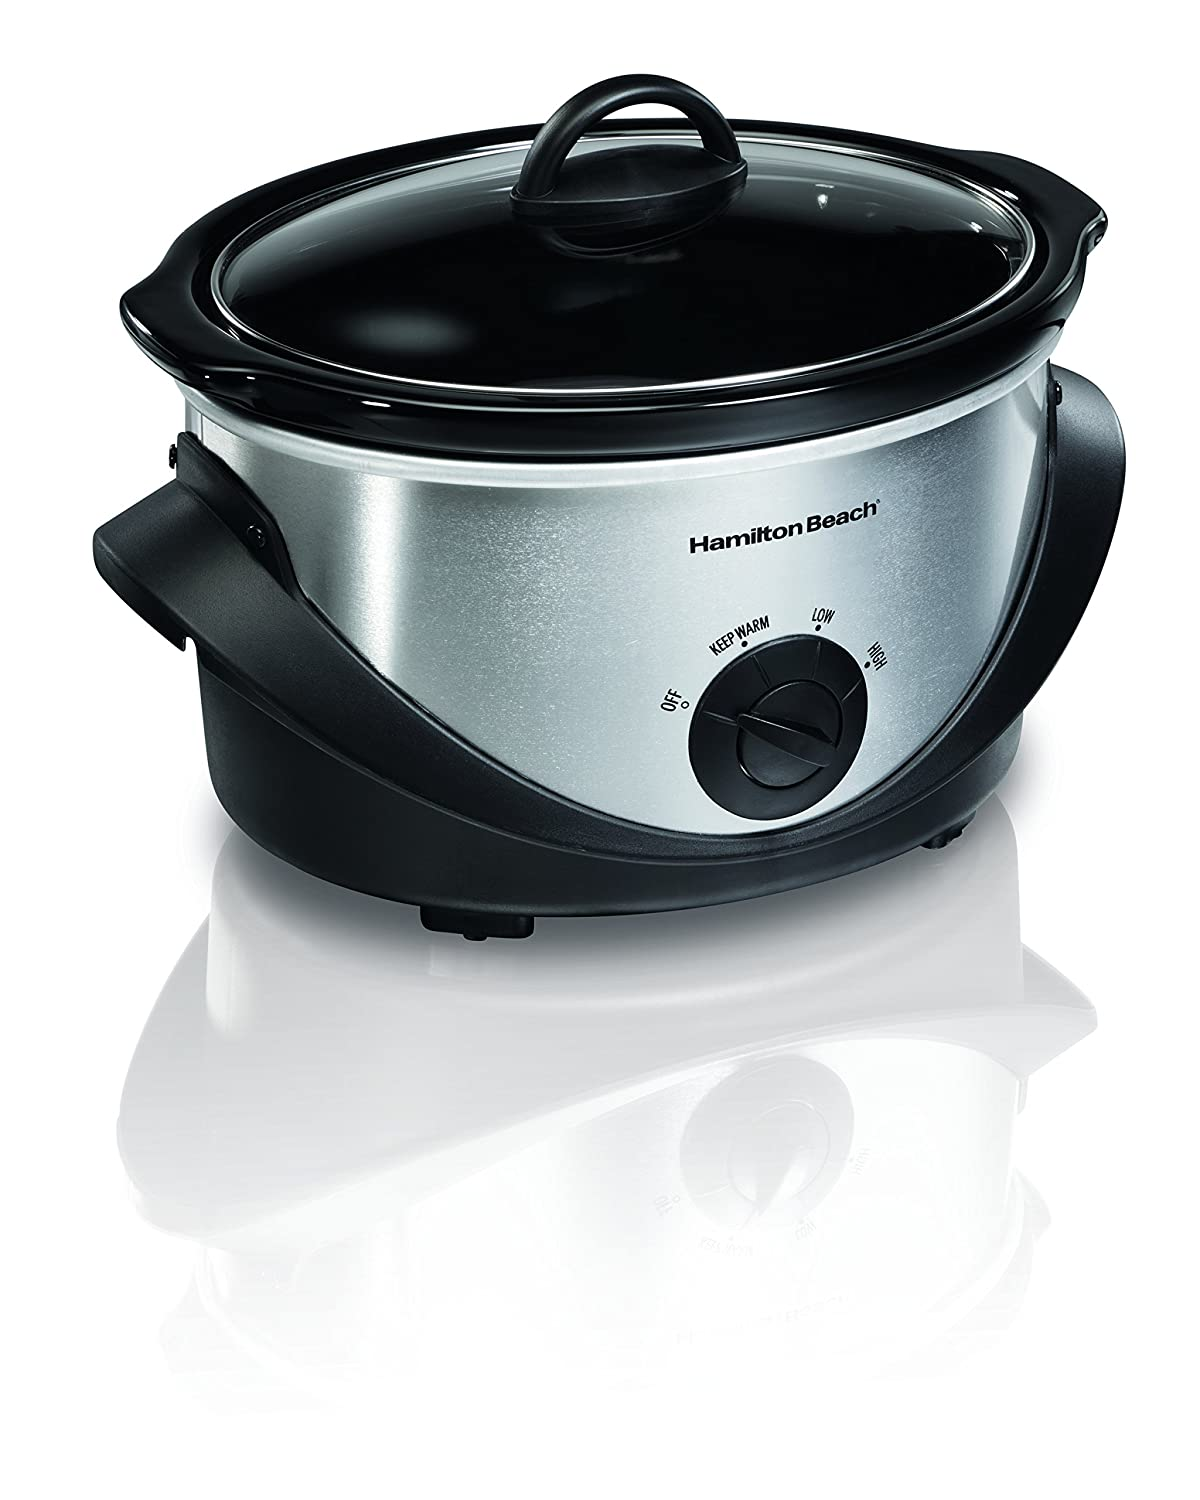 Amazon.com: Hamilton Beach 33141 4-Quart Oval Slow Cooker ...